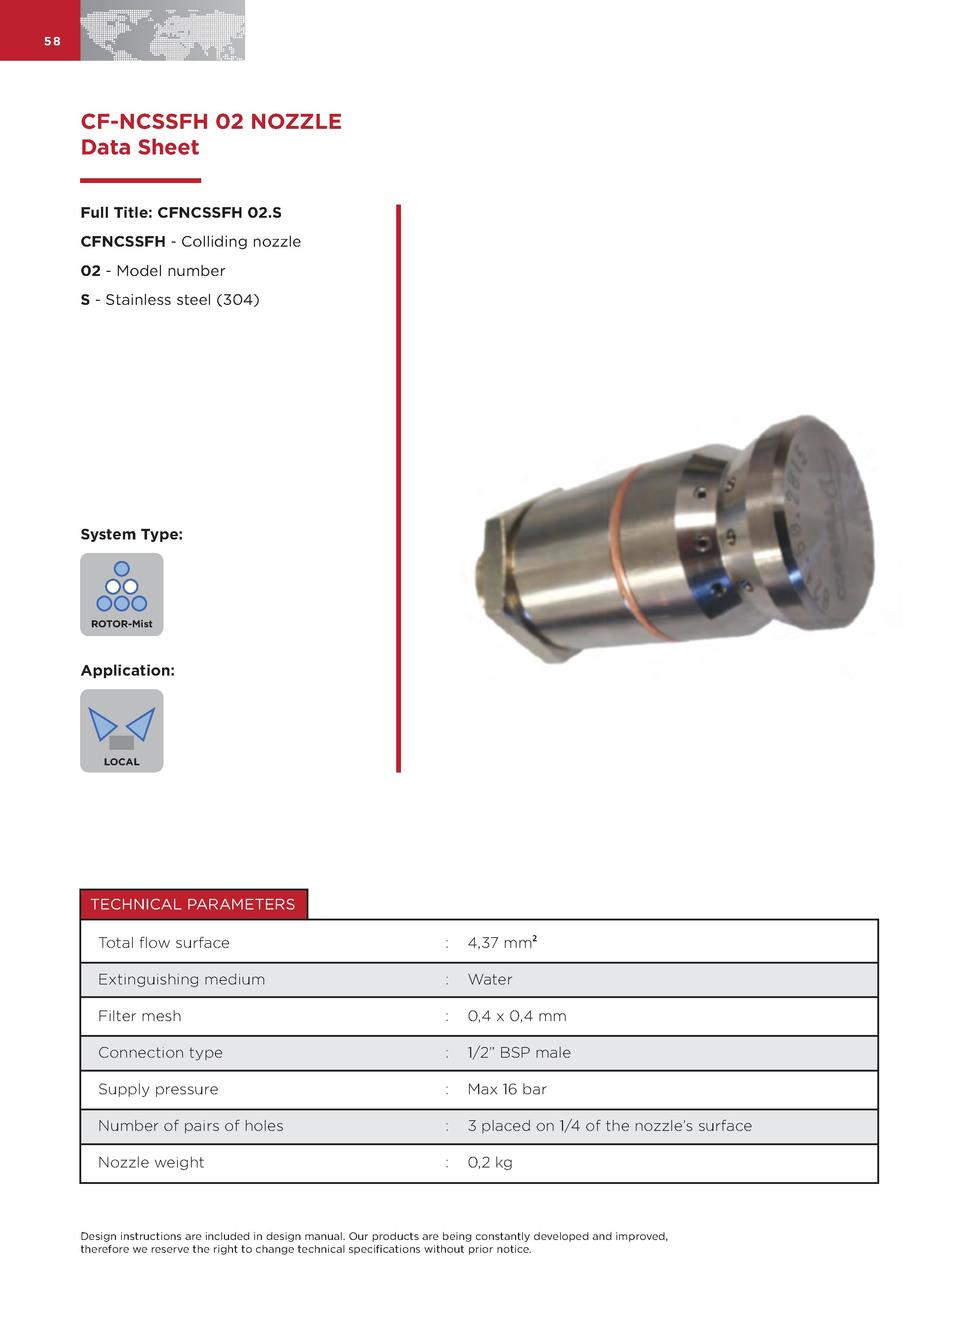 58  CF-NCSSFH 02 NOZZLE Data Sheet Full Title  CFNCSSFH 02.S CFNCSSFH - Colliding nozzle 02 - Model number S - Stainless s...